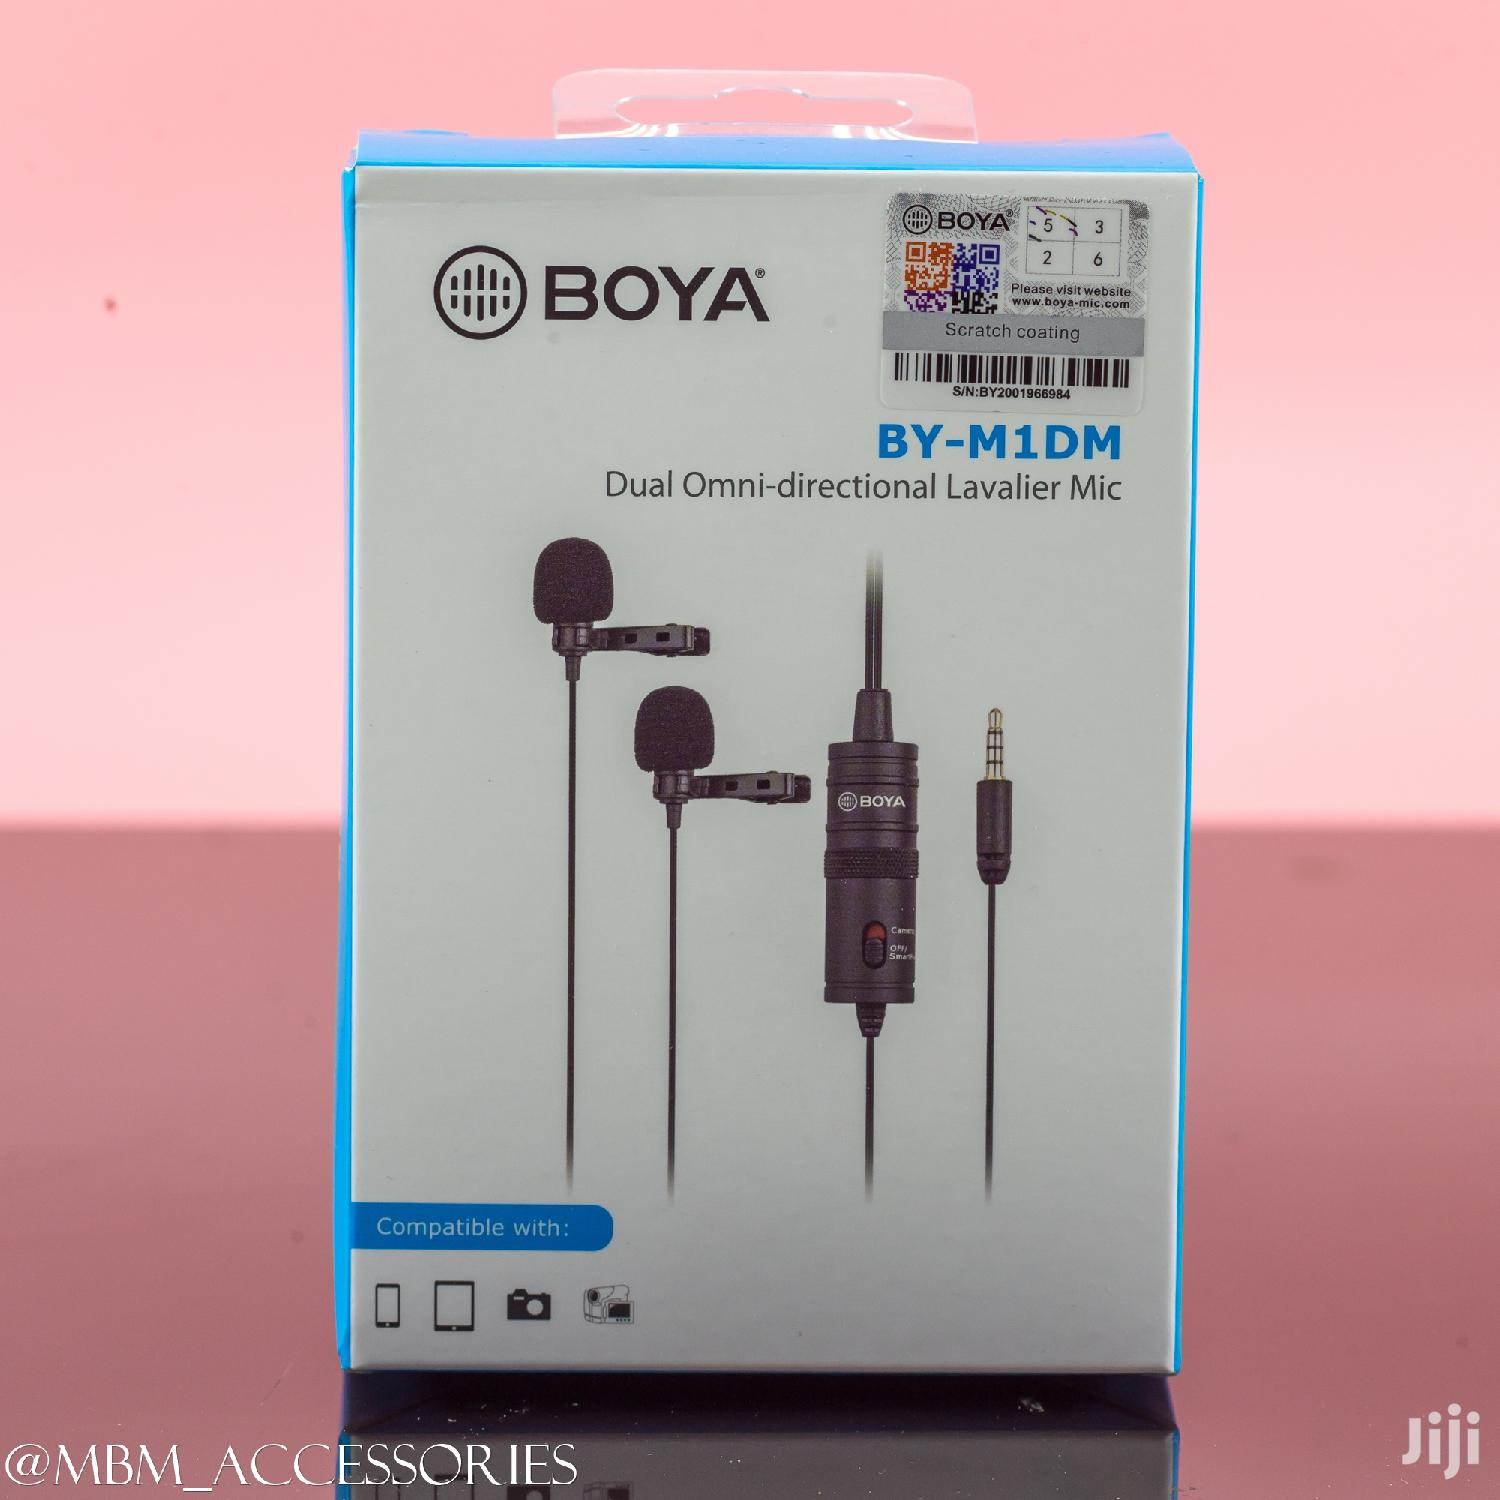 Archive: BOYA BY-M1DM Dual Head Lavalier Condenser Microphone